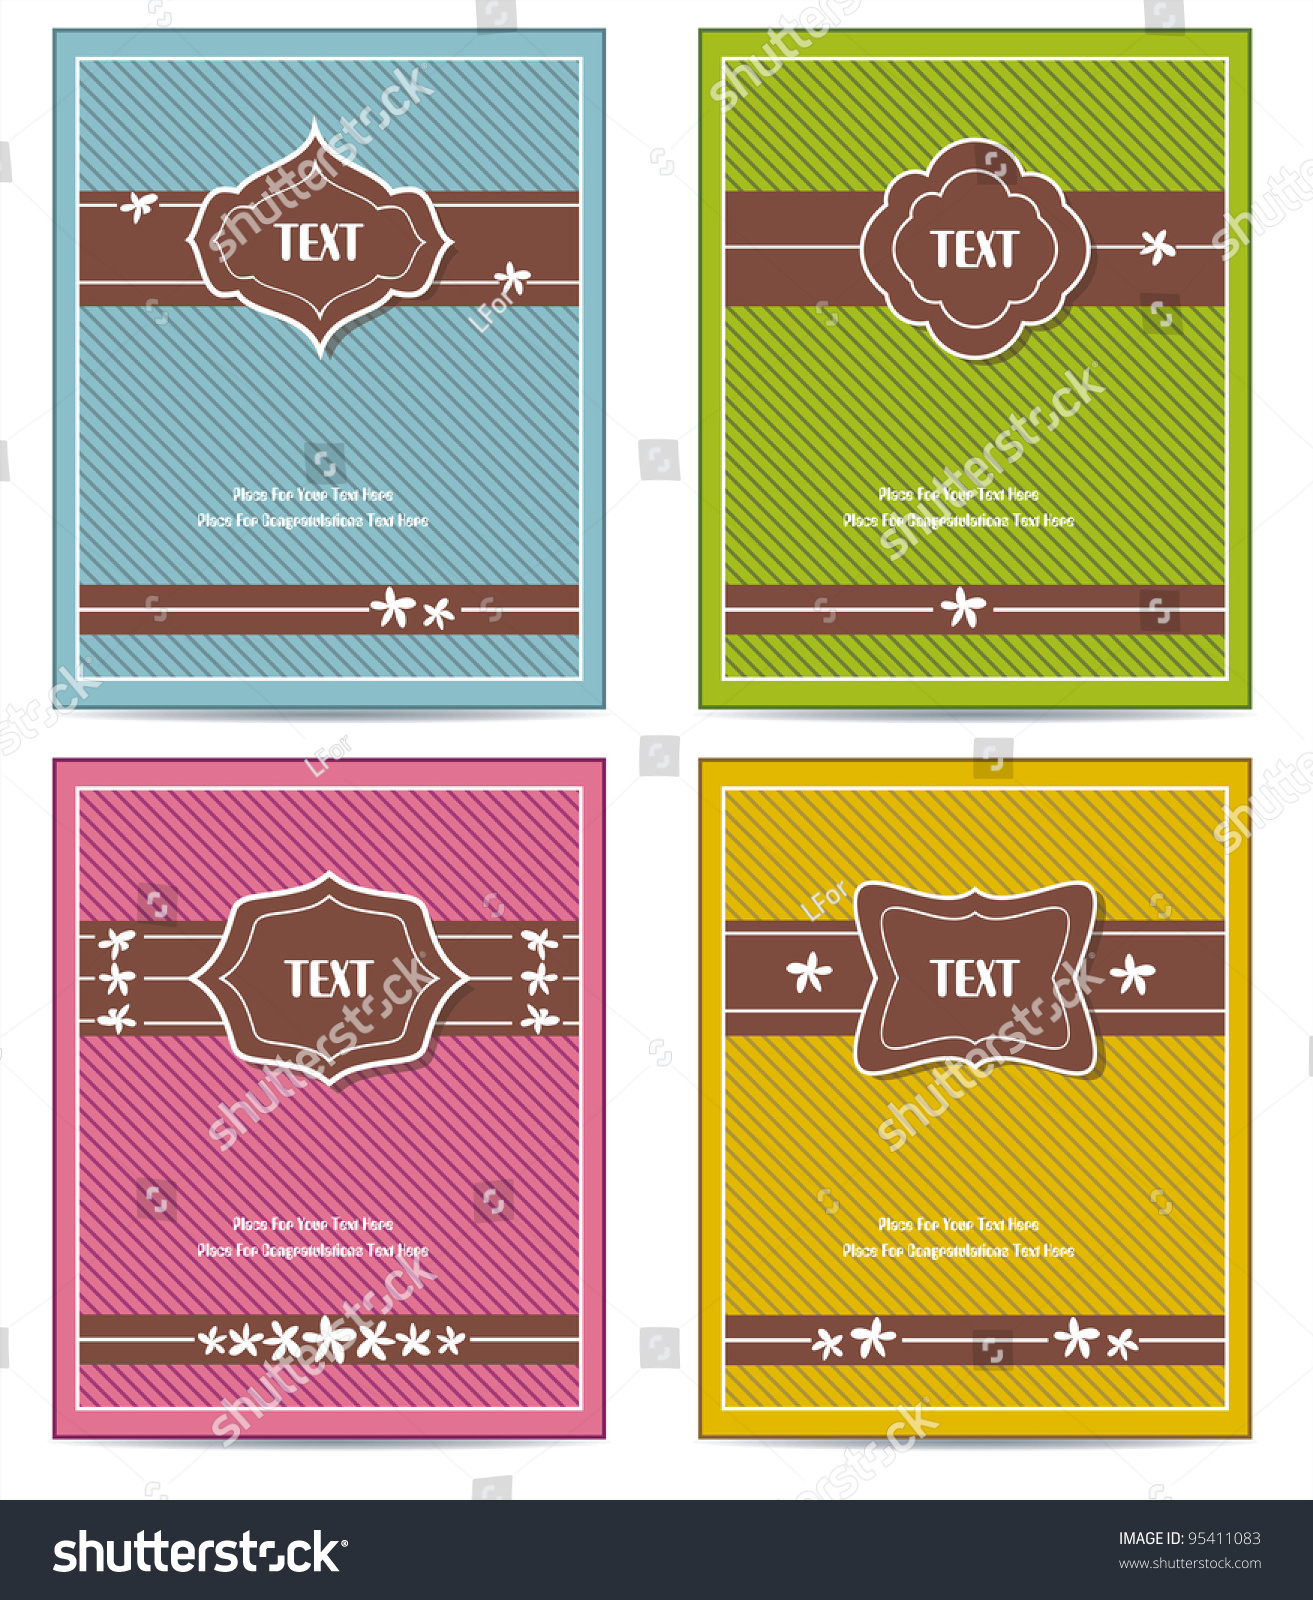 Old Book Cover Vector Free ~ Old vintage book cover set template stock vector